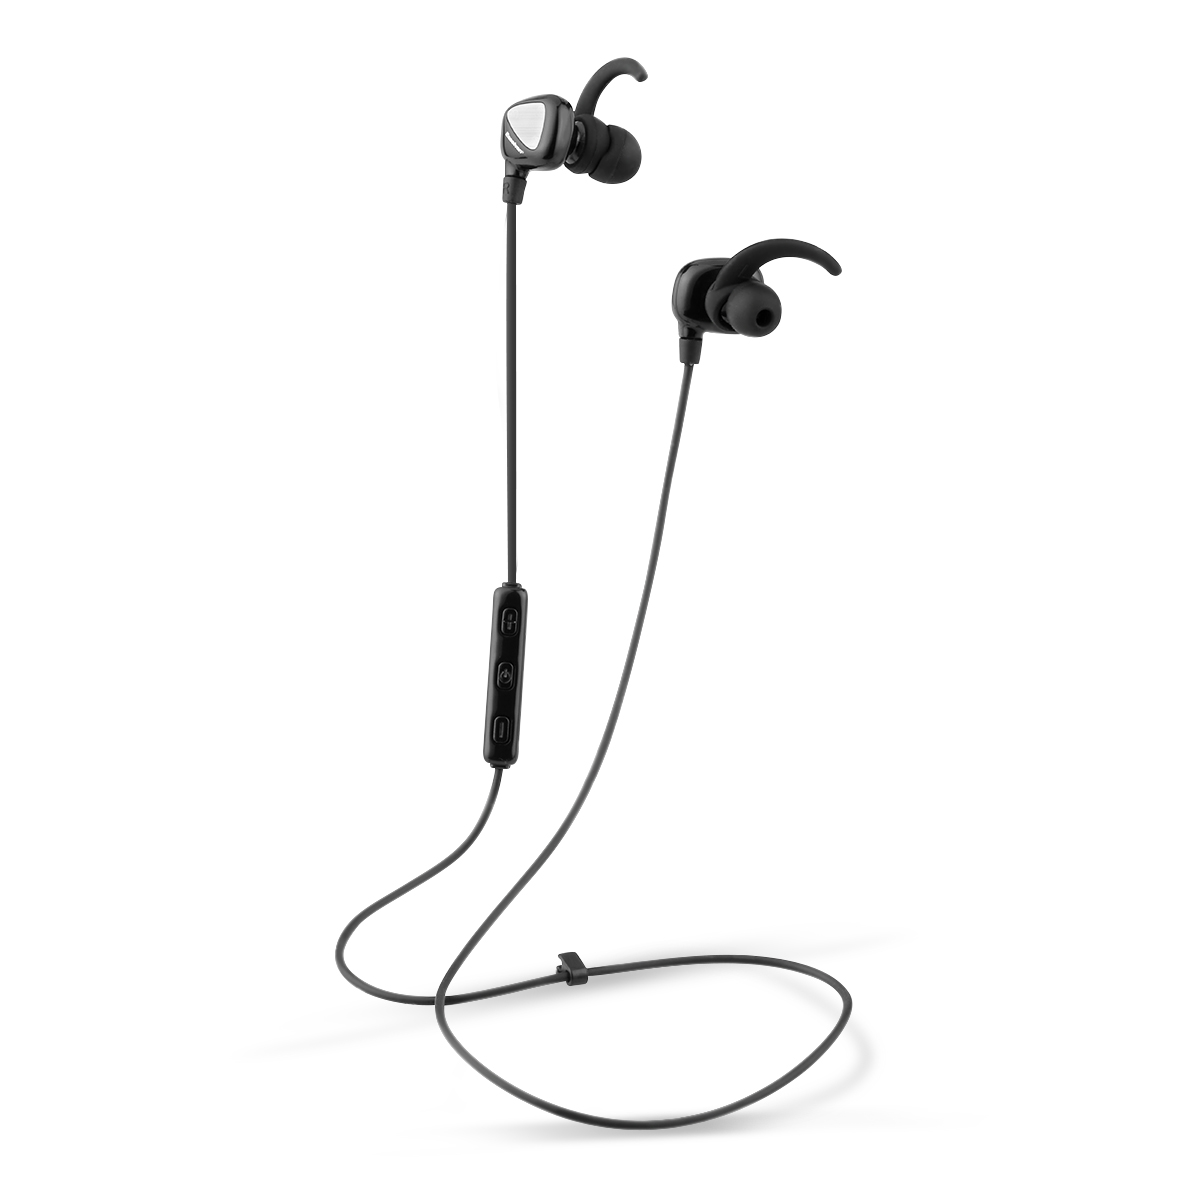 Excelvan Wireless Bluetooth 4 1 Stereo Fashion Style